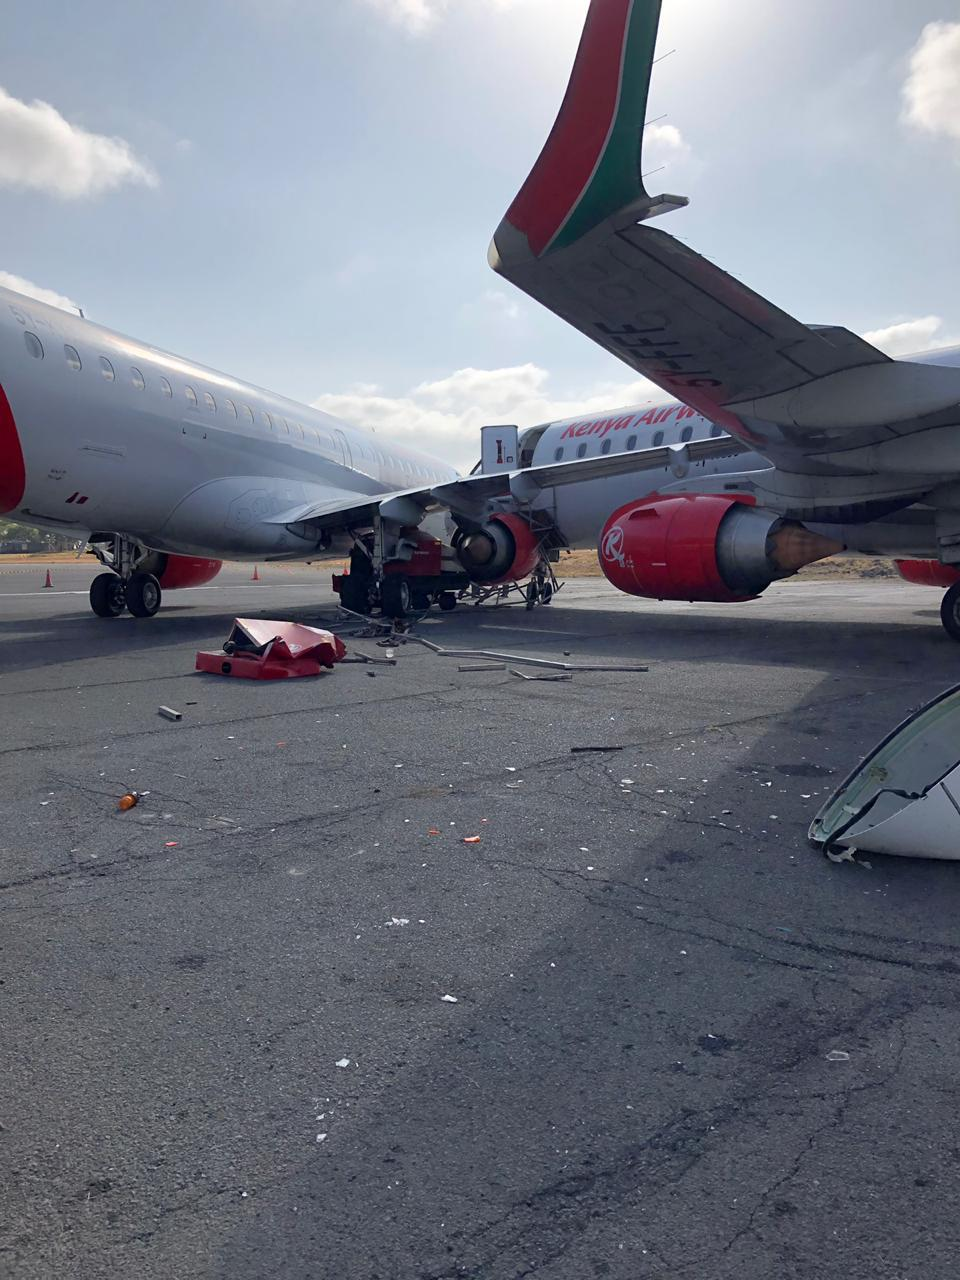 #KenyaAirways' hangar incident takes two Embraers out of action